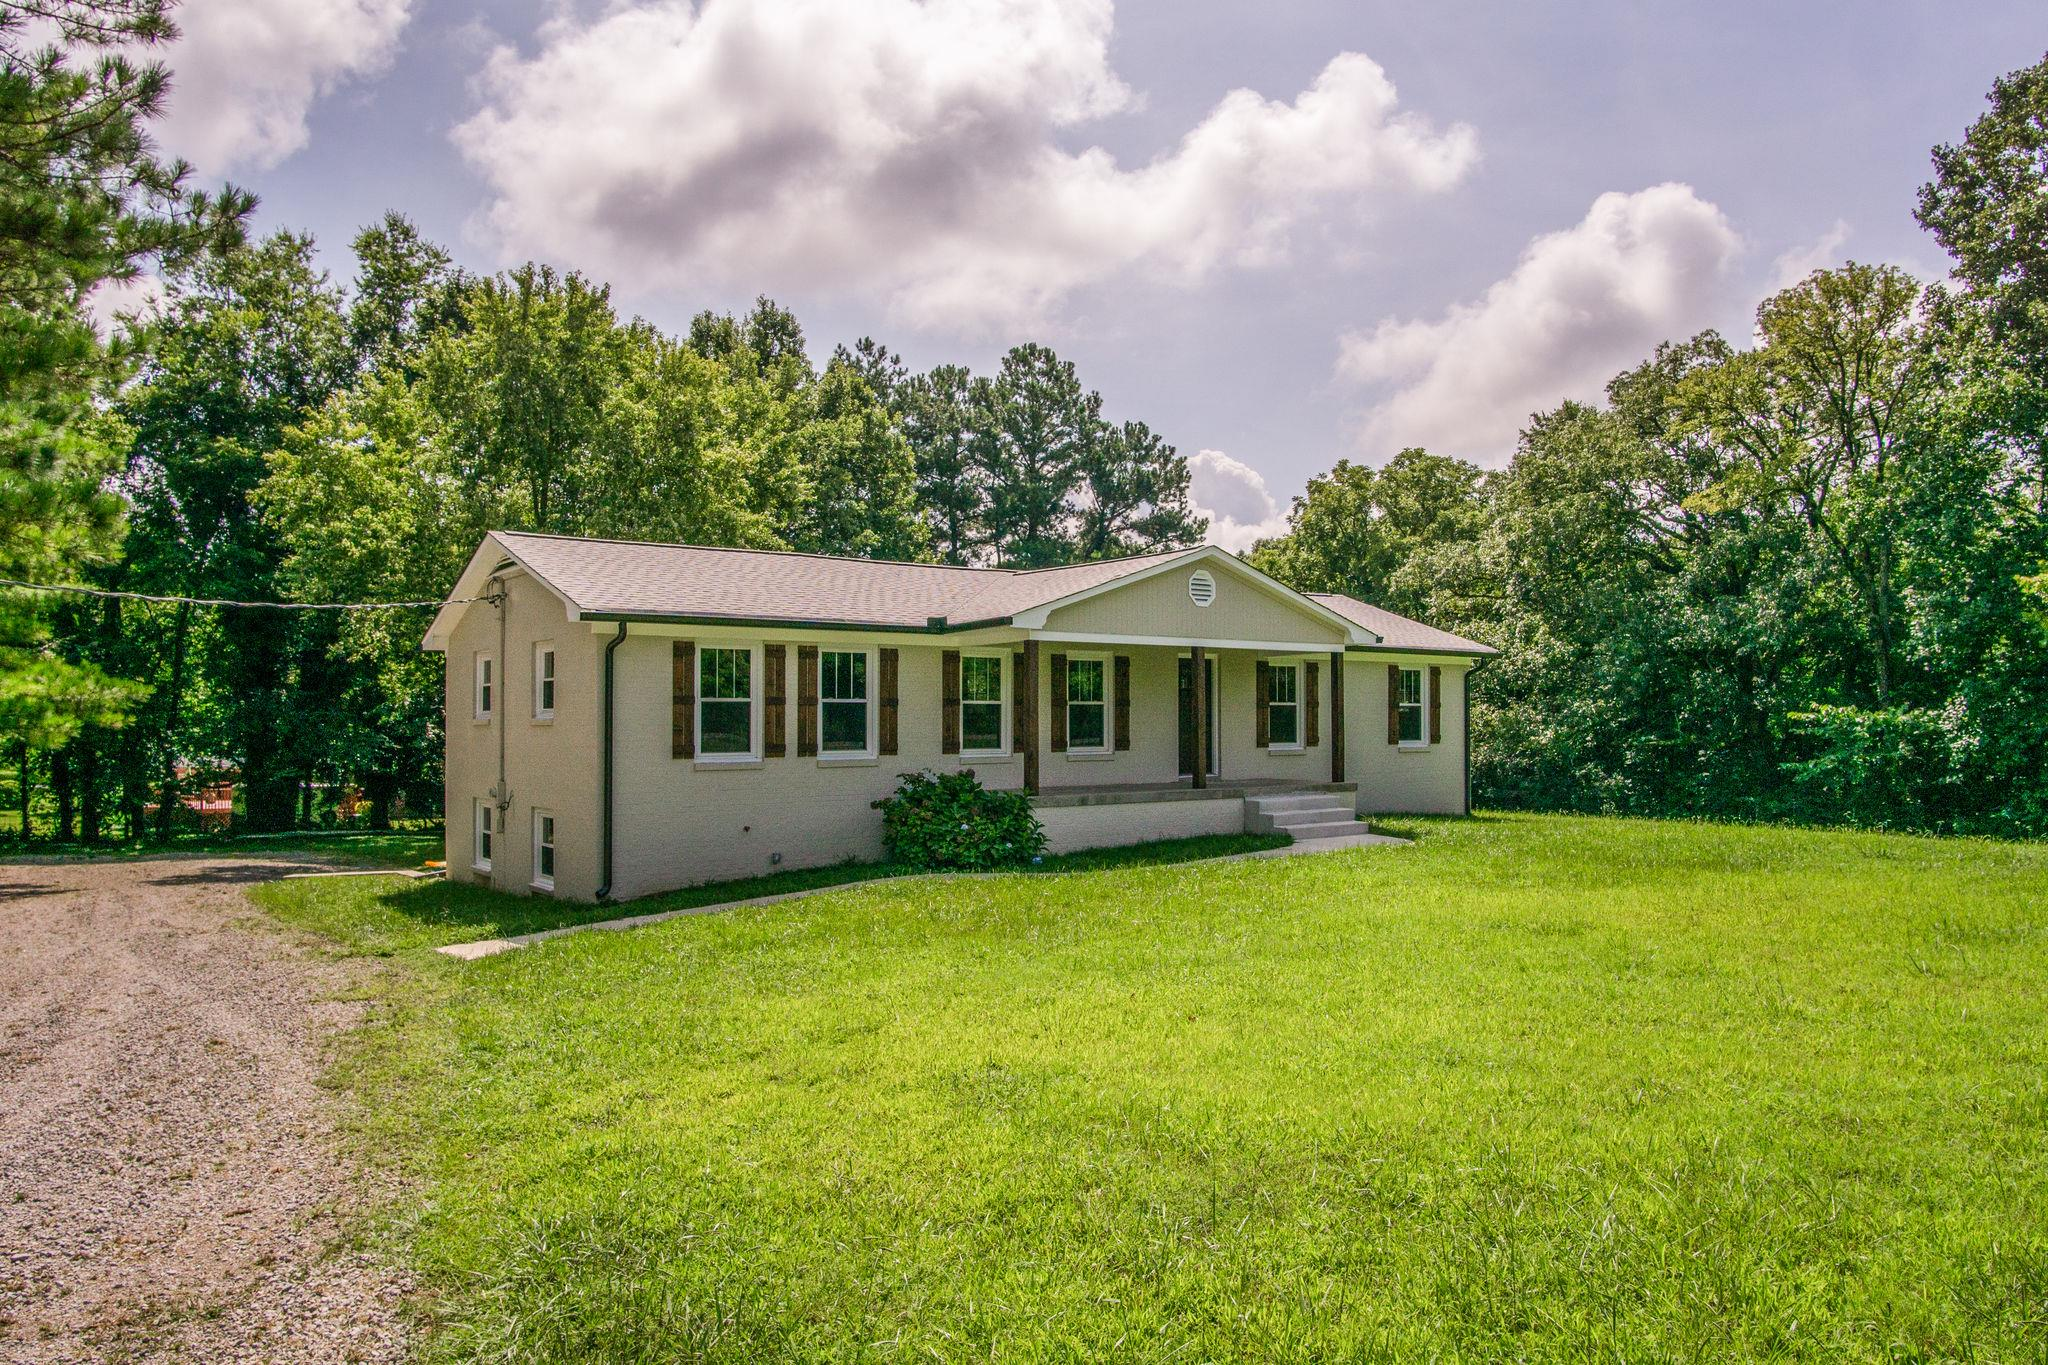 505 Centennial Ave, Lewisburg, TN 37091 - Lewisburg, TN real estate listing